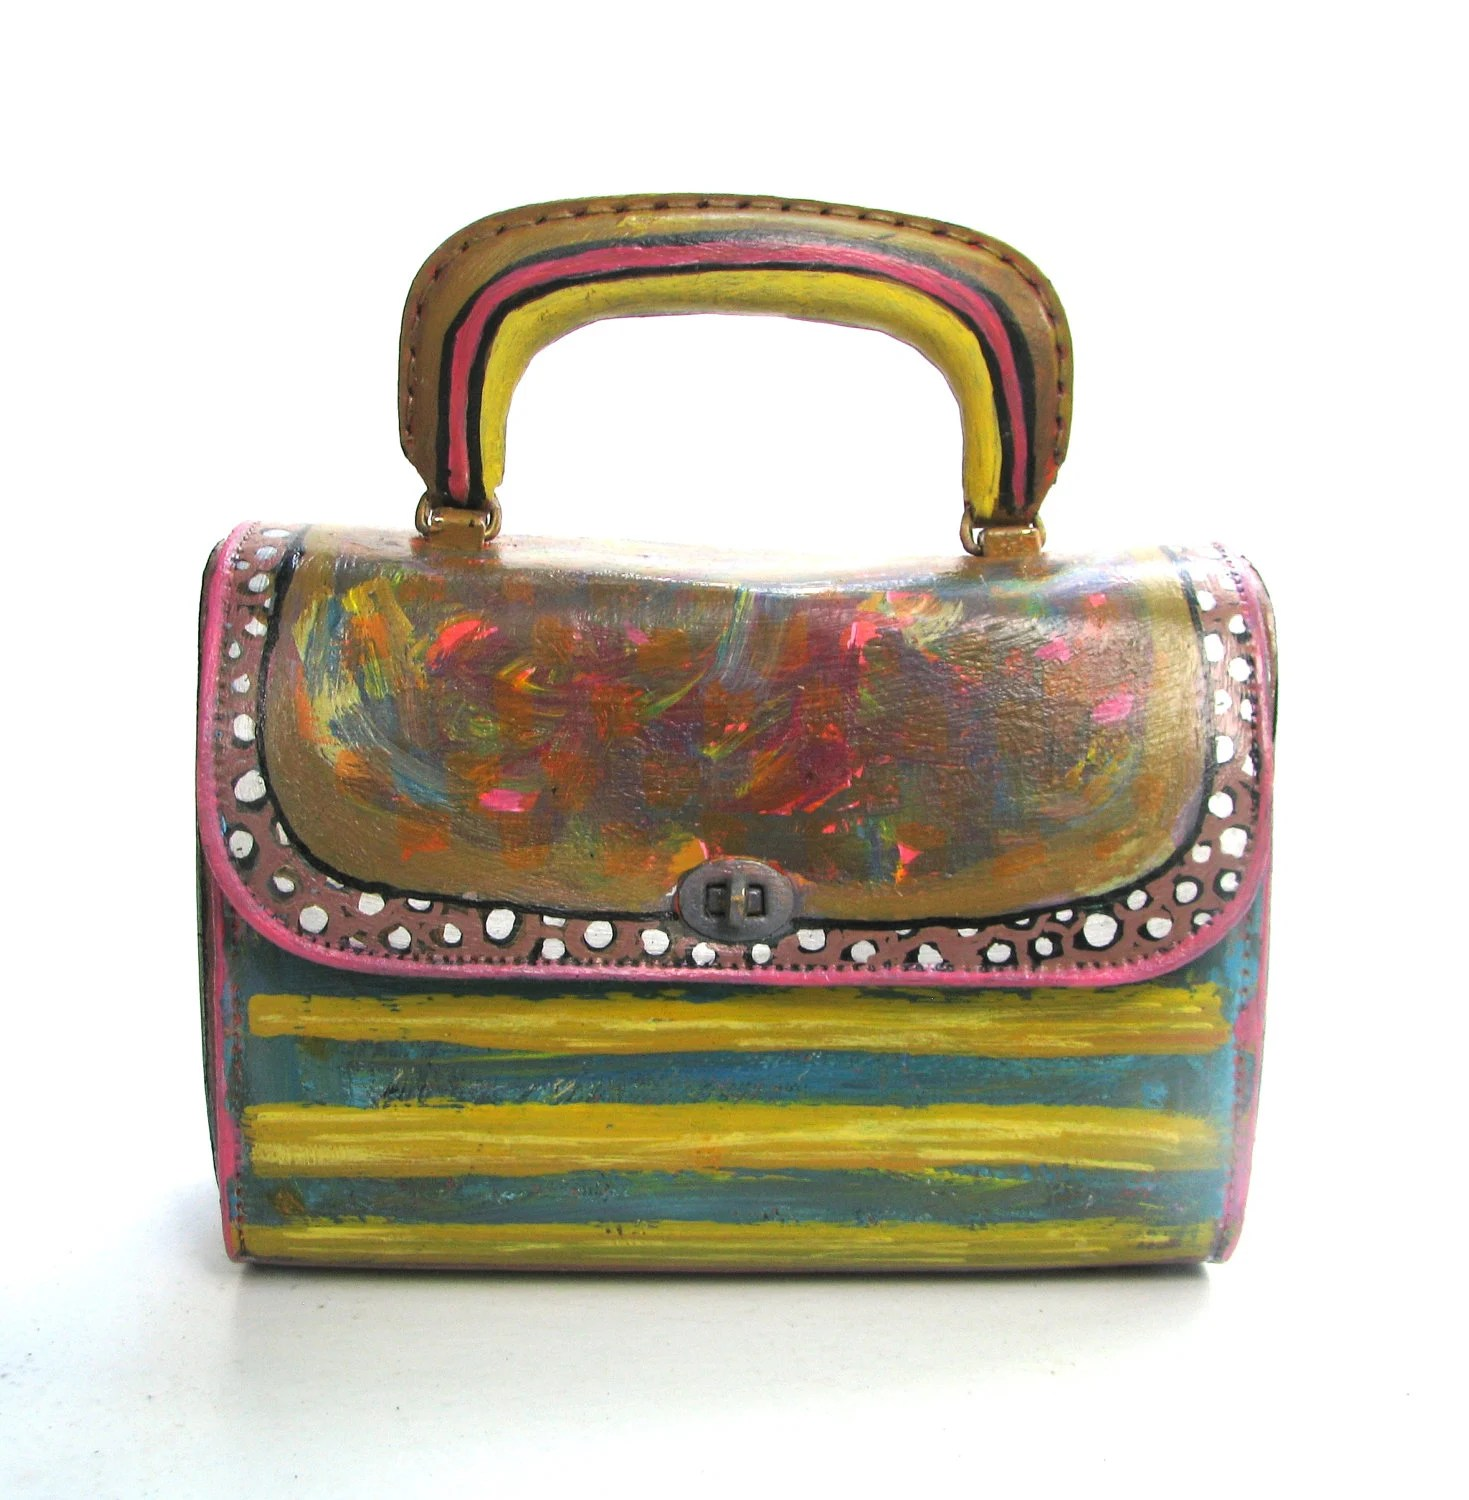 Handbag Vintage Vinyl Handpainted in Fall Colors, Upcycled Purse Indian Summer - itzaChicThing